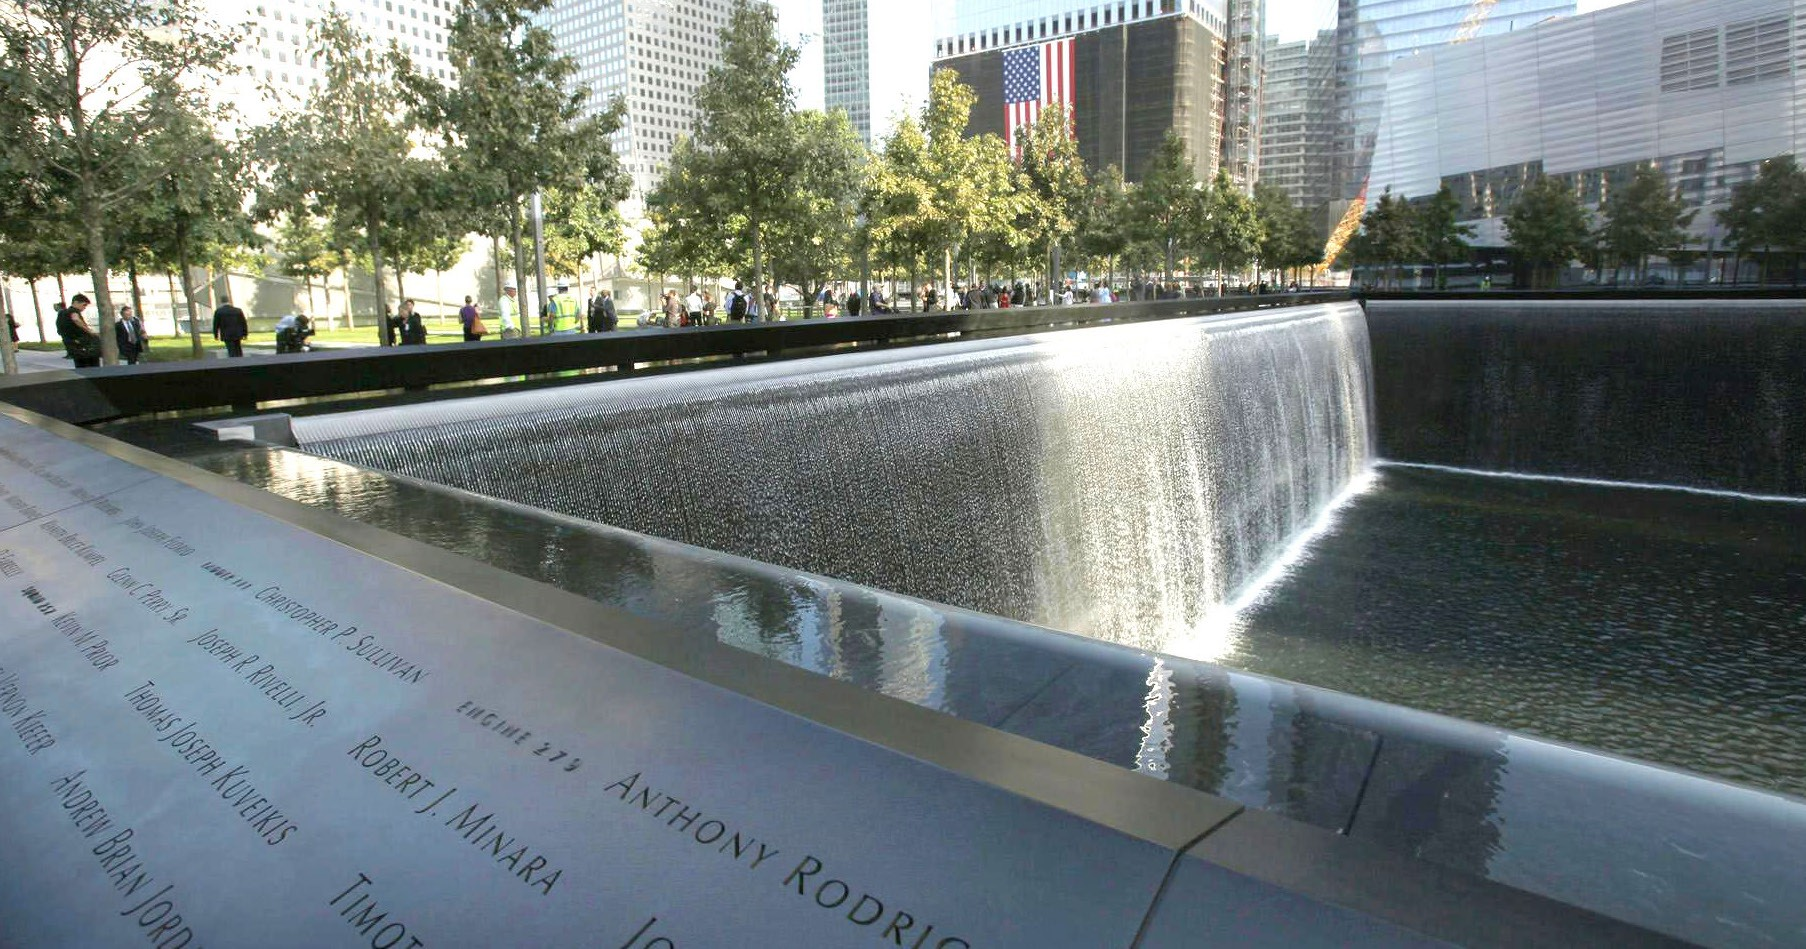 Visitors stroll the grounds near one of the pools at the 9/11 memorial plaza in the World Trade Center site in New York